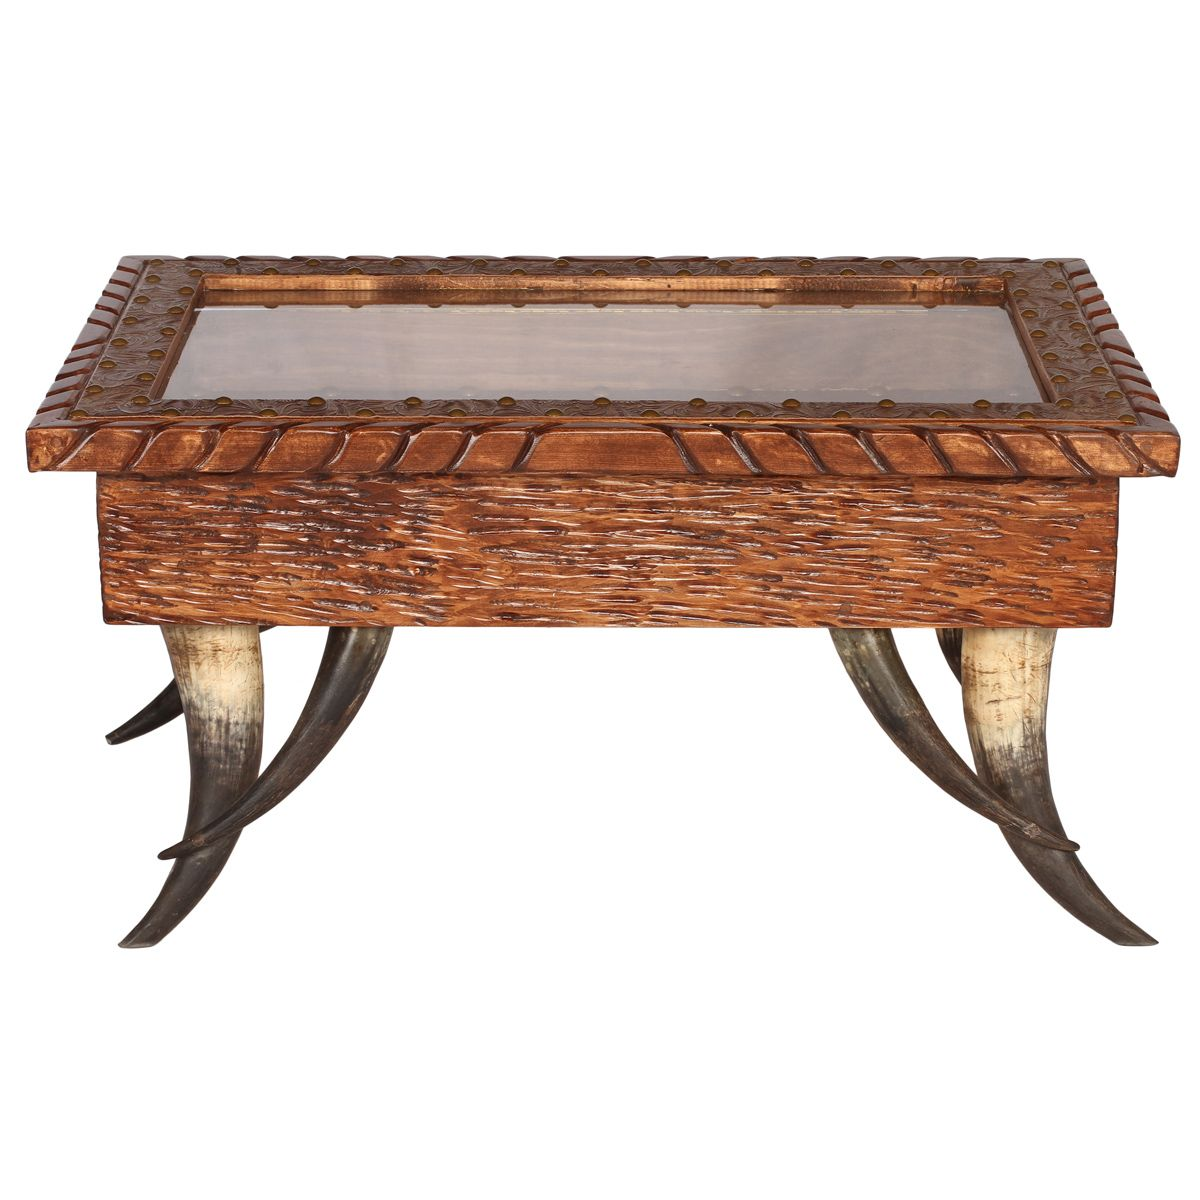 Best Shadow Box Ideas Pictures Decor And Remodel Shadow Box - Shadow box coffee table for sale